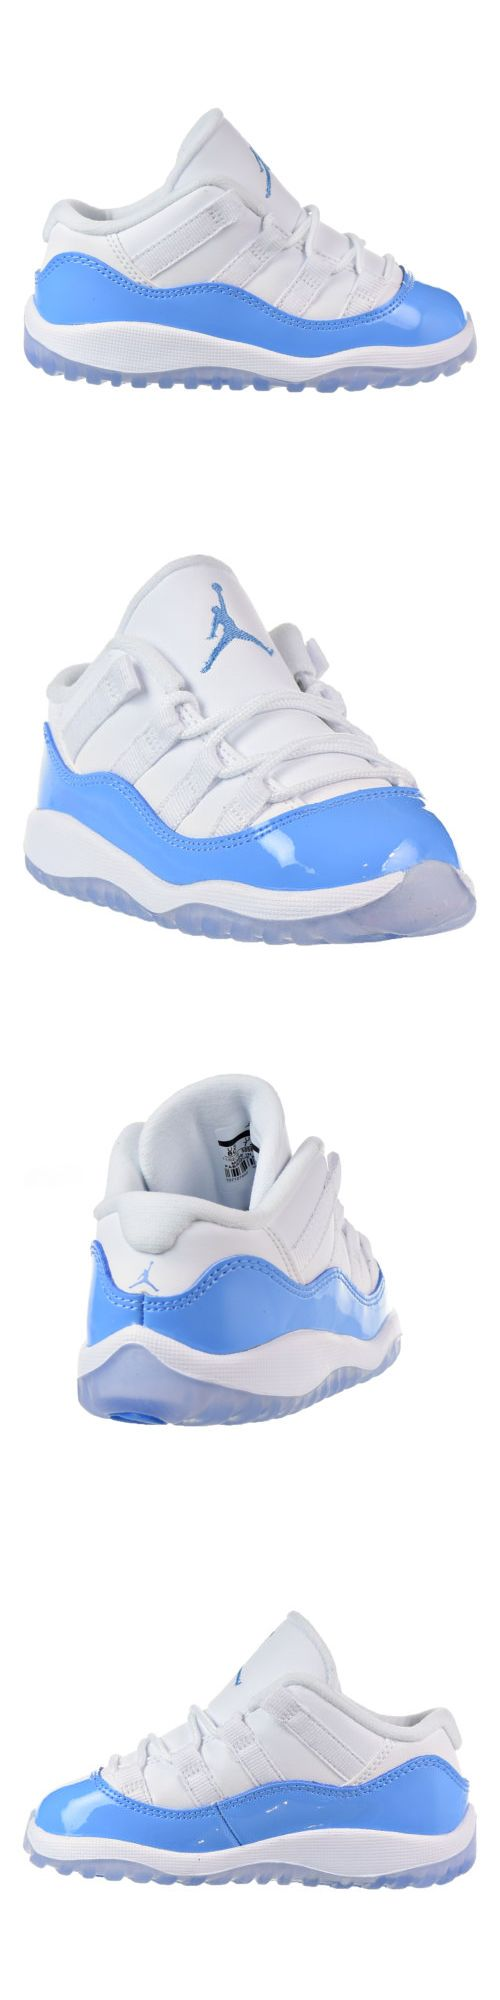 Infant Shoes: Jordan 11 Retro Low Bt Infants Toddlers Shoes White Blue-Black 505836-106 -> BUY IT NOW ONLY: $79.95 on eBay!